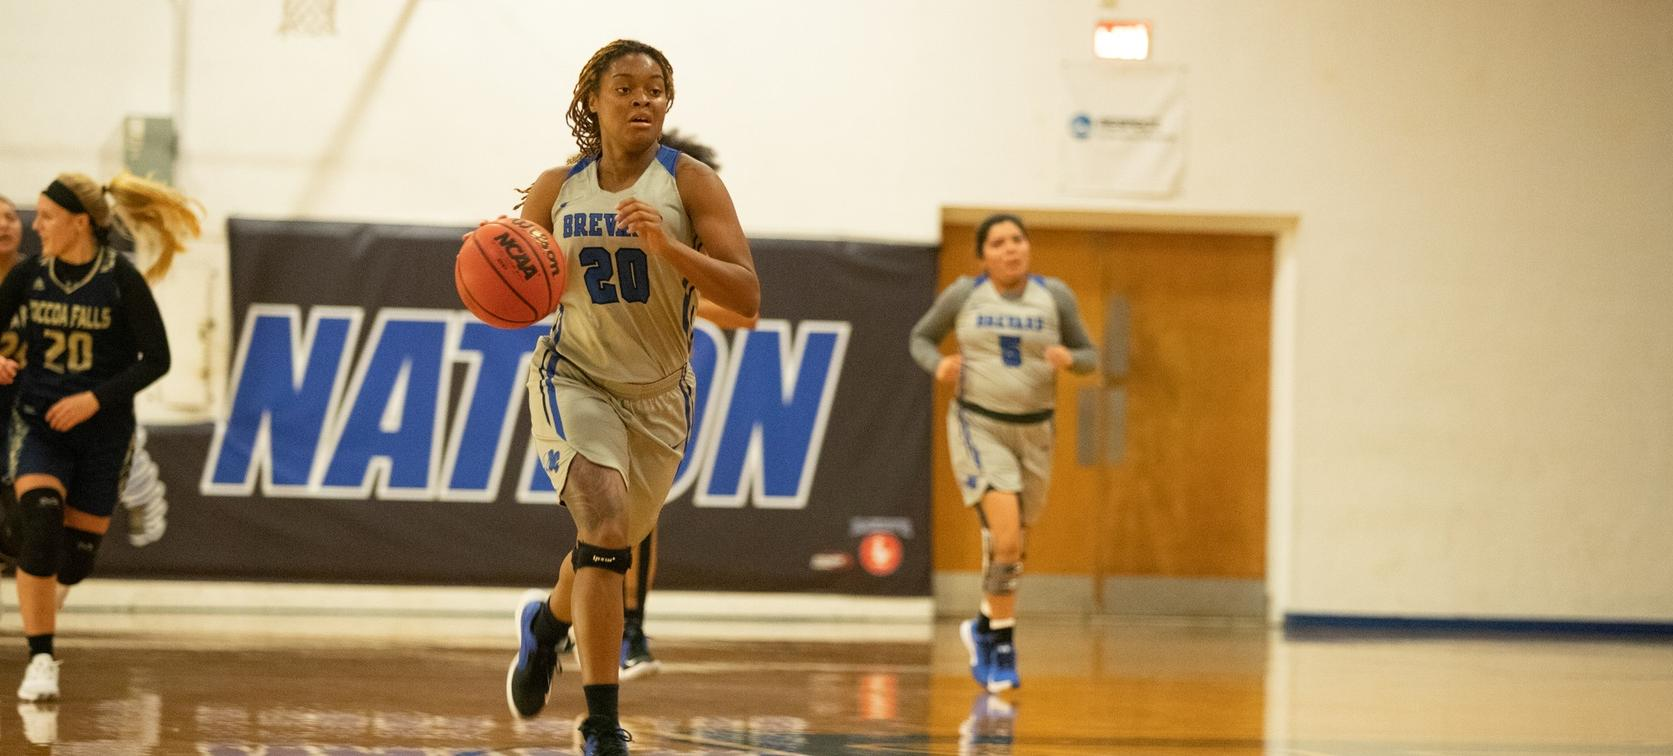 Junior forward Deja Riddick posted a new career-high 22 points in Brevard's season-opening 65-56 victory over Toccoa Falls College (Photo courtesy of Thom Kennedy '21).